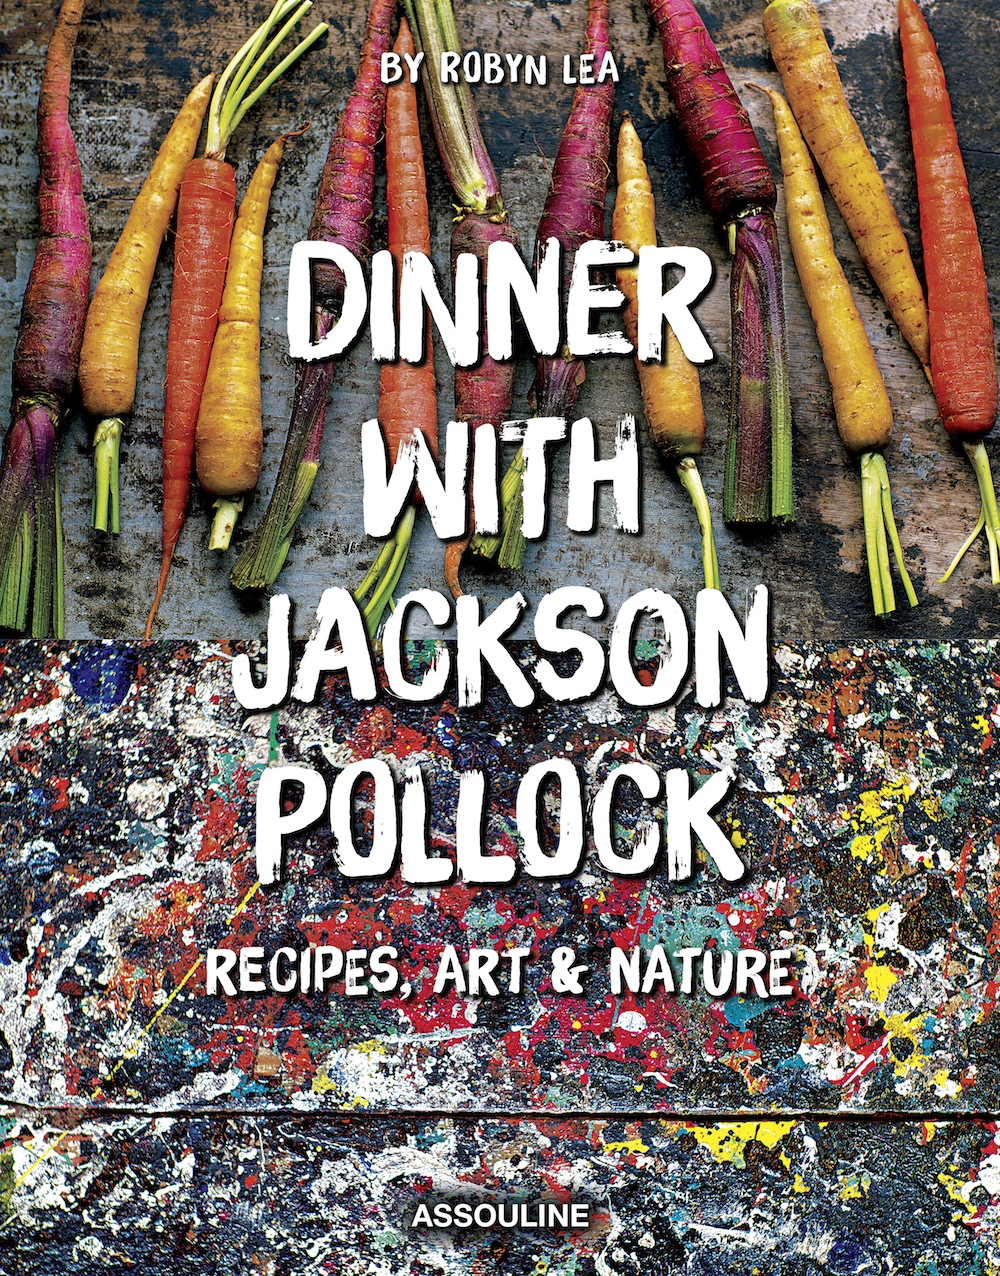 Dinner with Jackson Pollock_flat cover